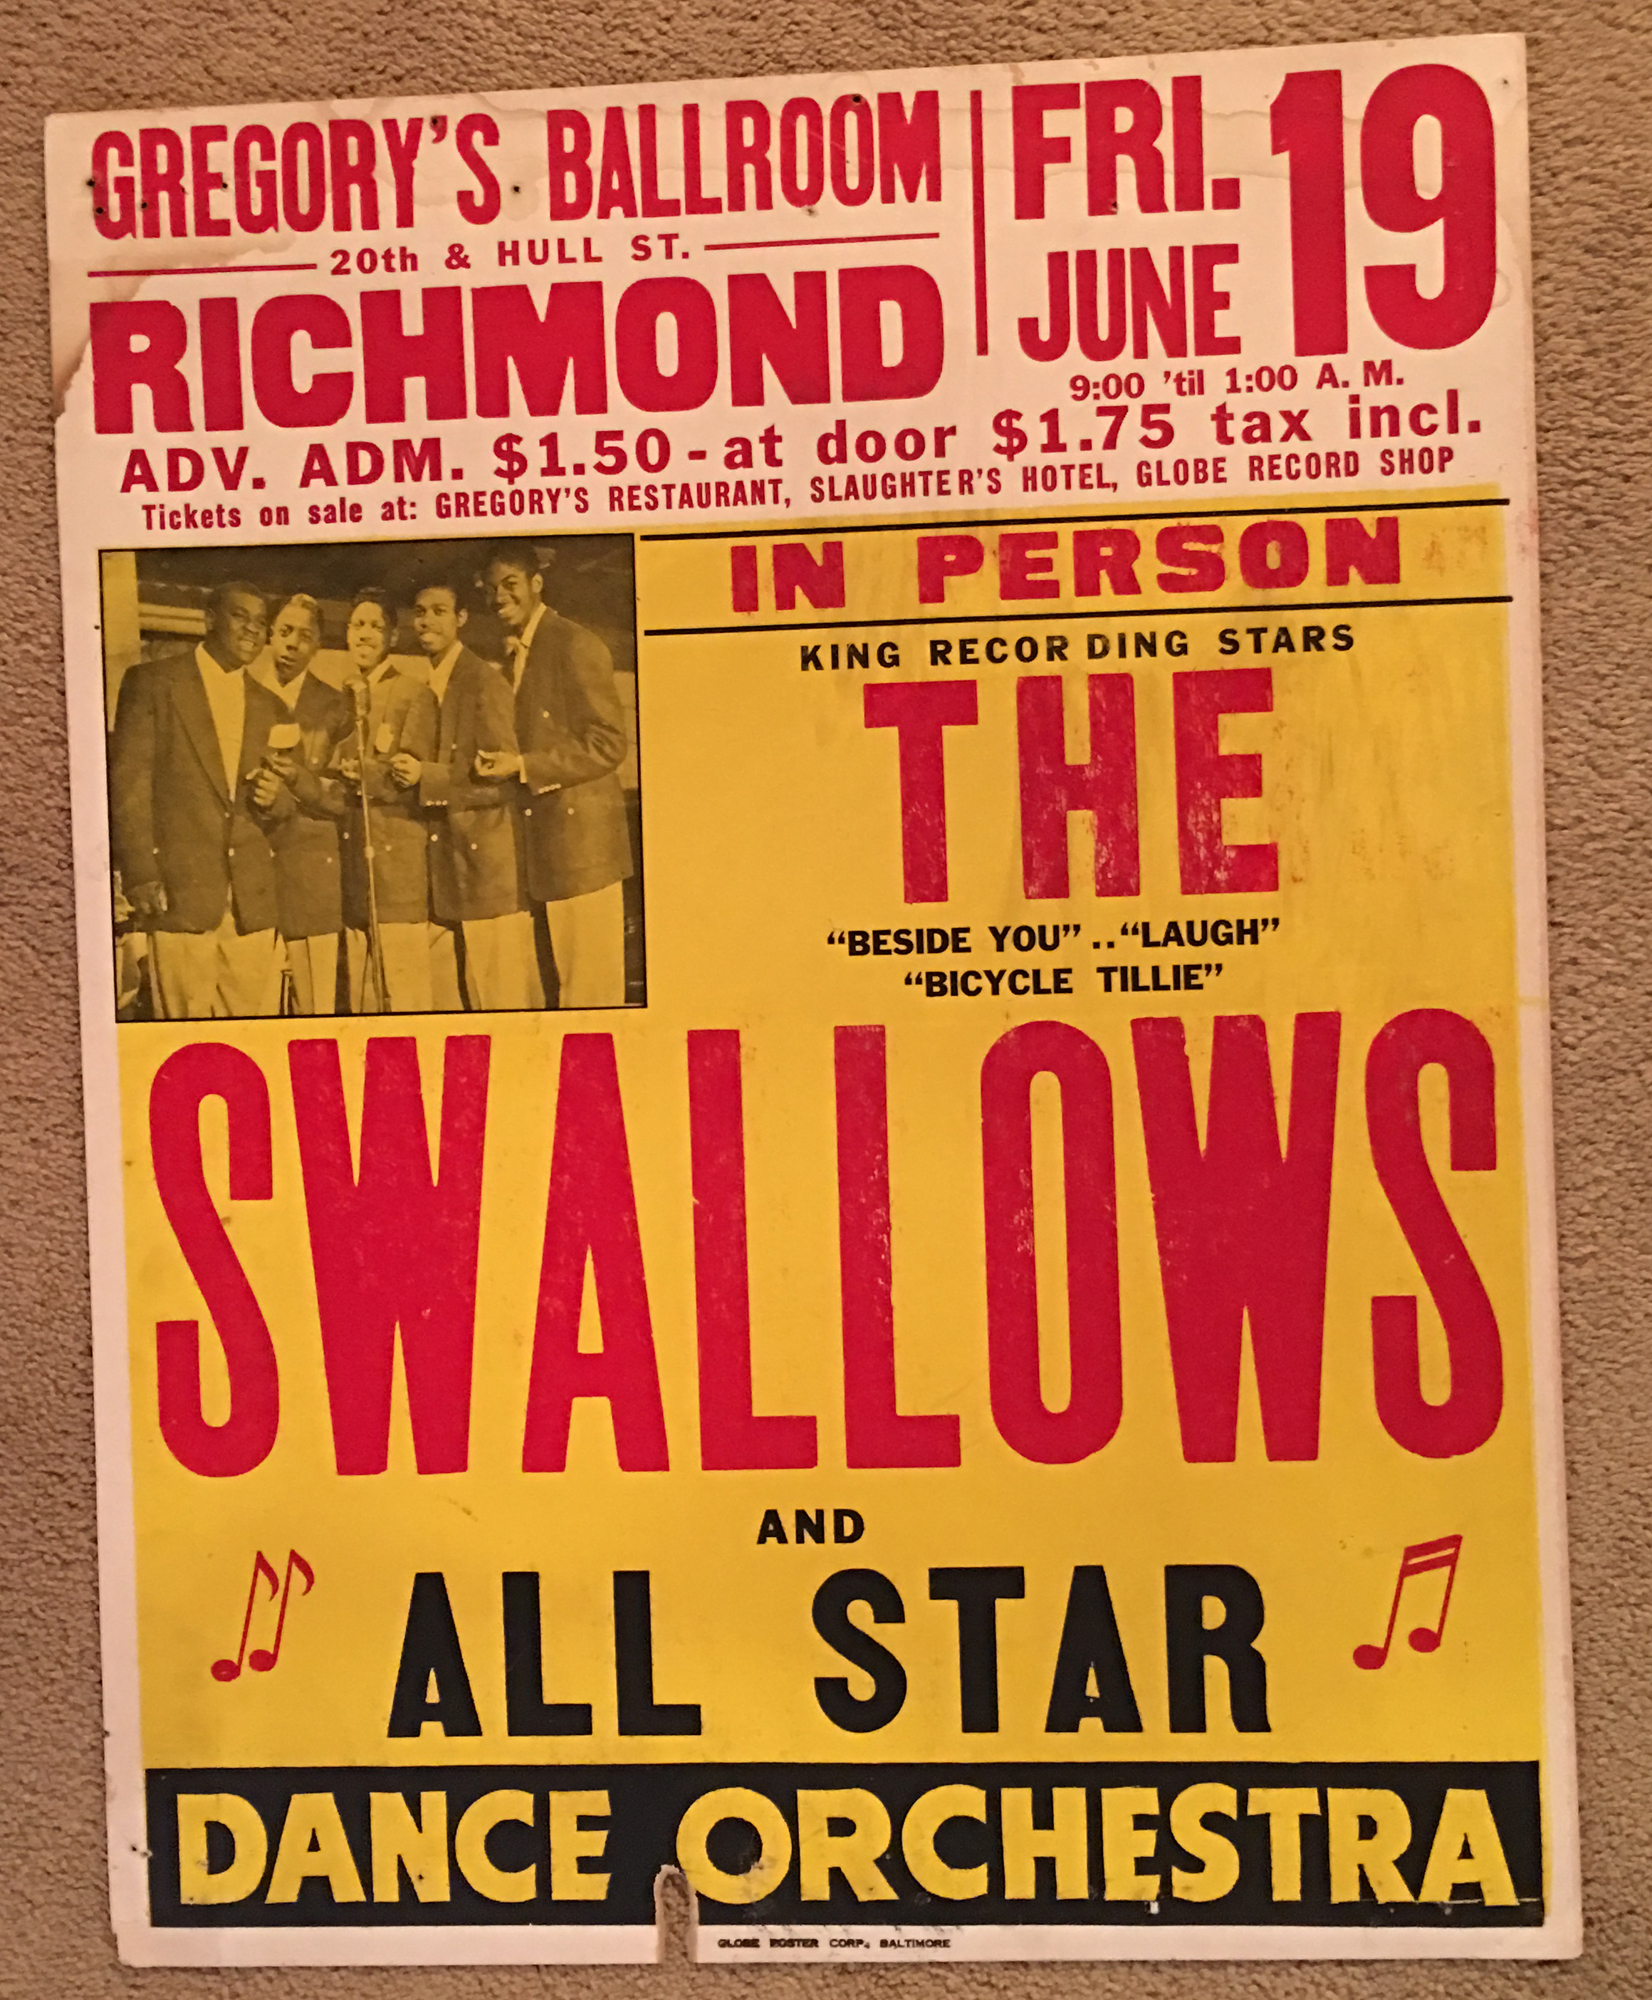 The Swallows, 1953, Boxing-Style Jumbo Globe Concert Poster, Richmond Virginia